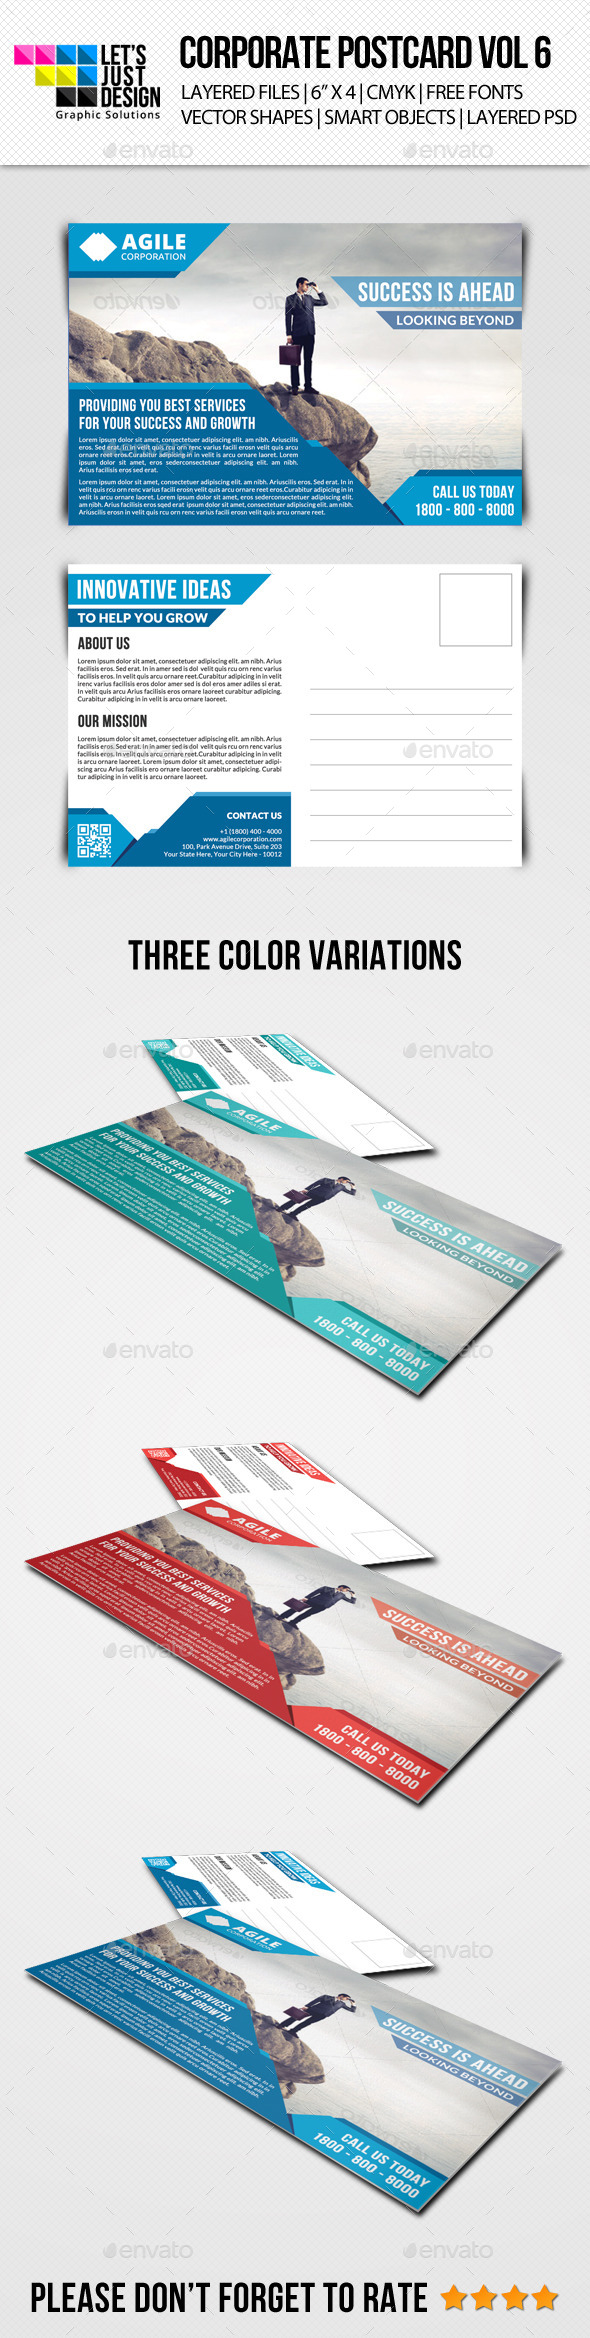 GraphicRiver Corporate Postcard Template Vol 6 9205239